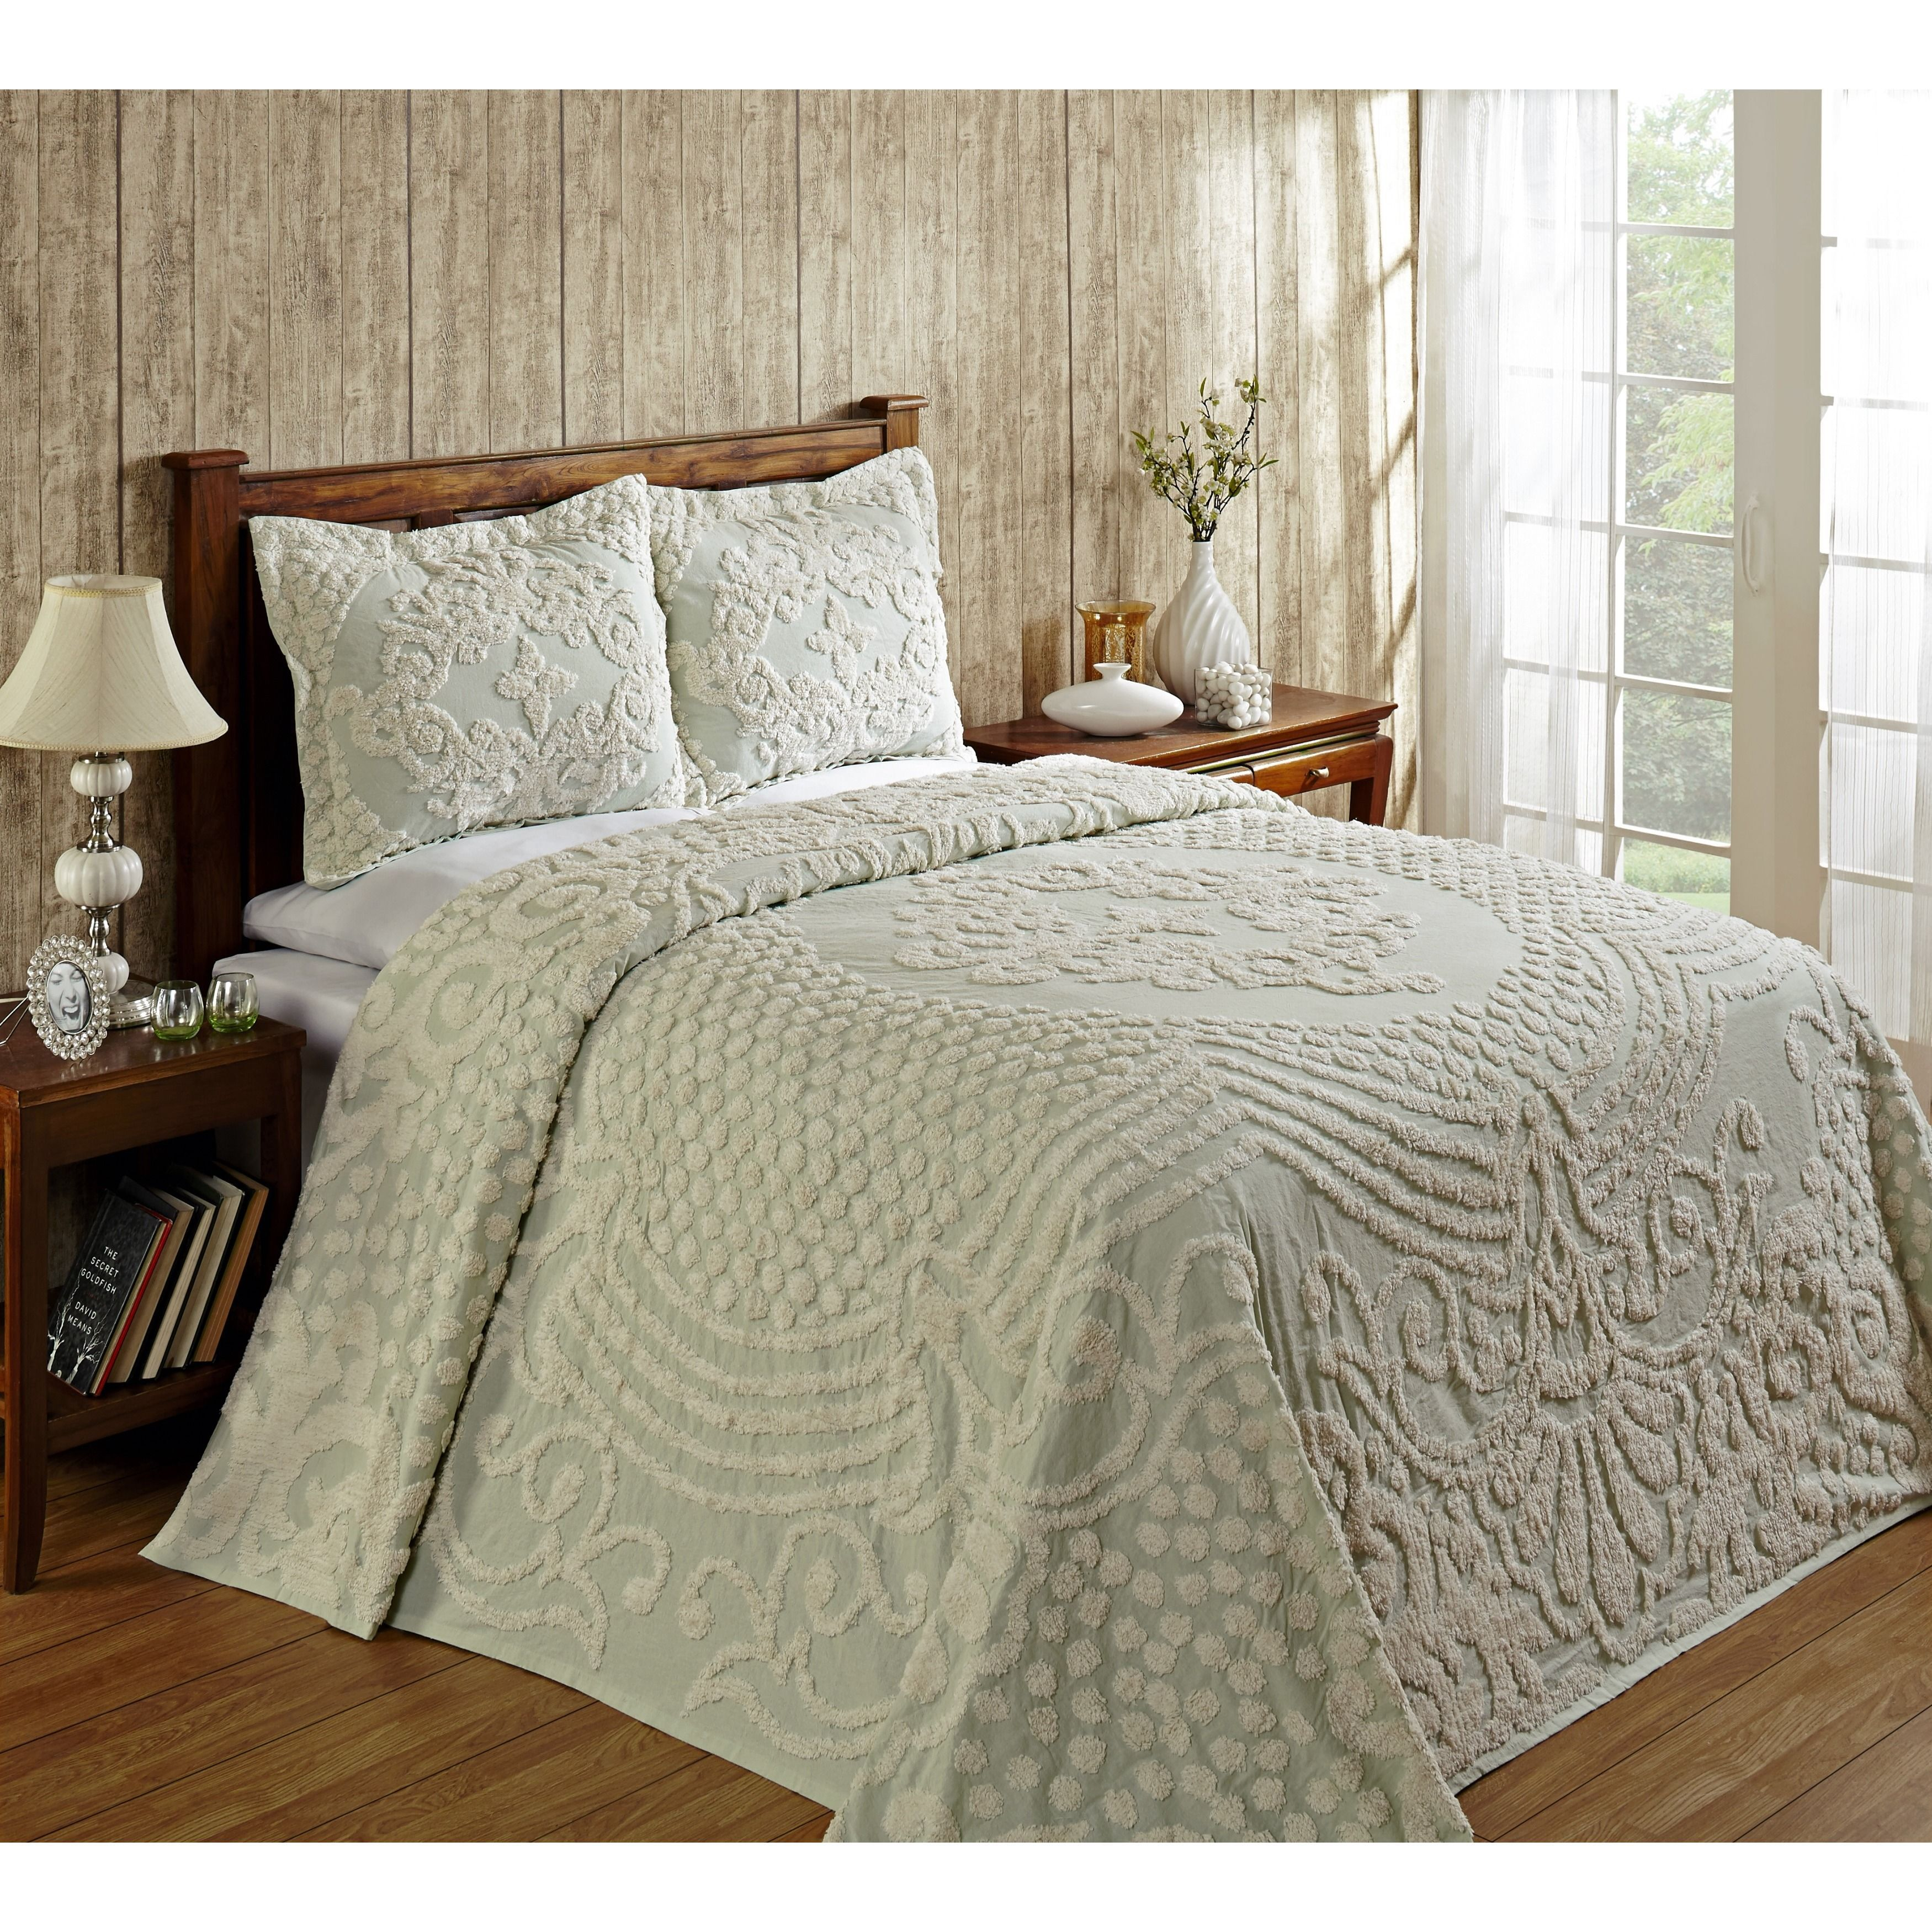 Old Fashioned Cotton Bedspreads.The Florence Cotton Chenille Tufted Bedspread Features